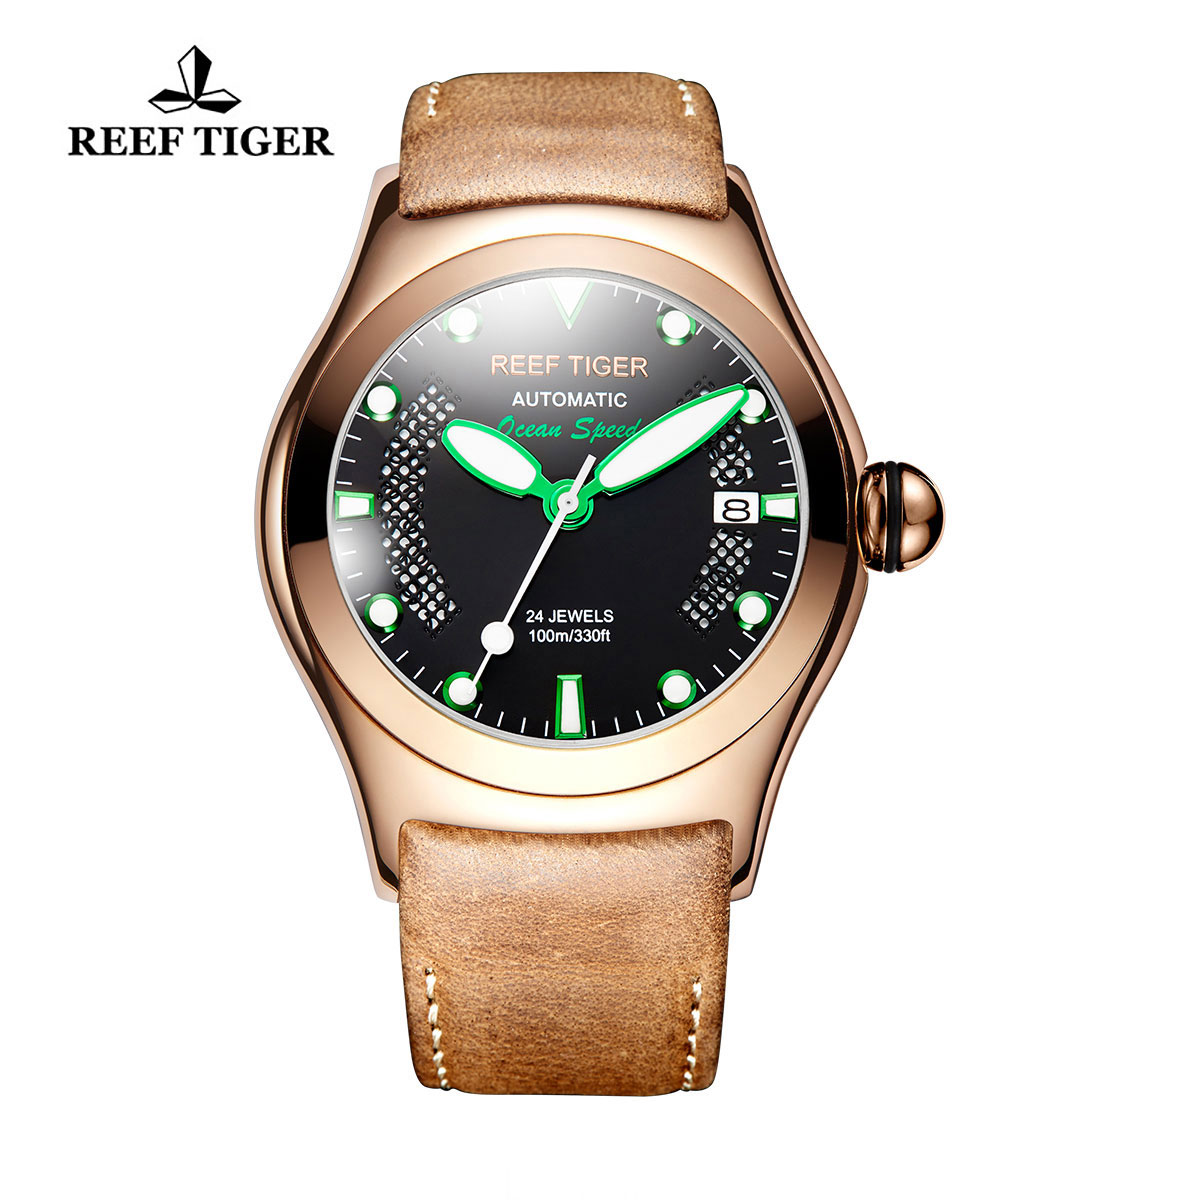 Reef Tiger Ocean Speed Sport Watches Automatic Rose Gold Case Leather Strap Black Dial Watch RGA704-PBBN